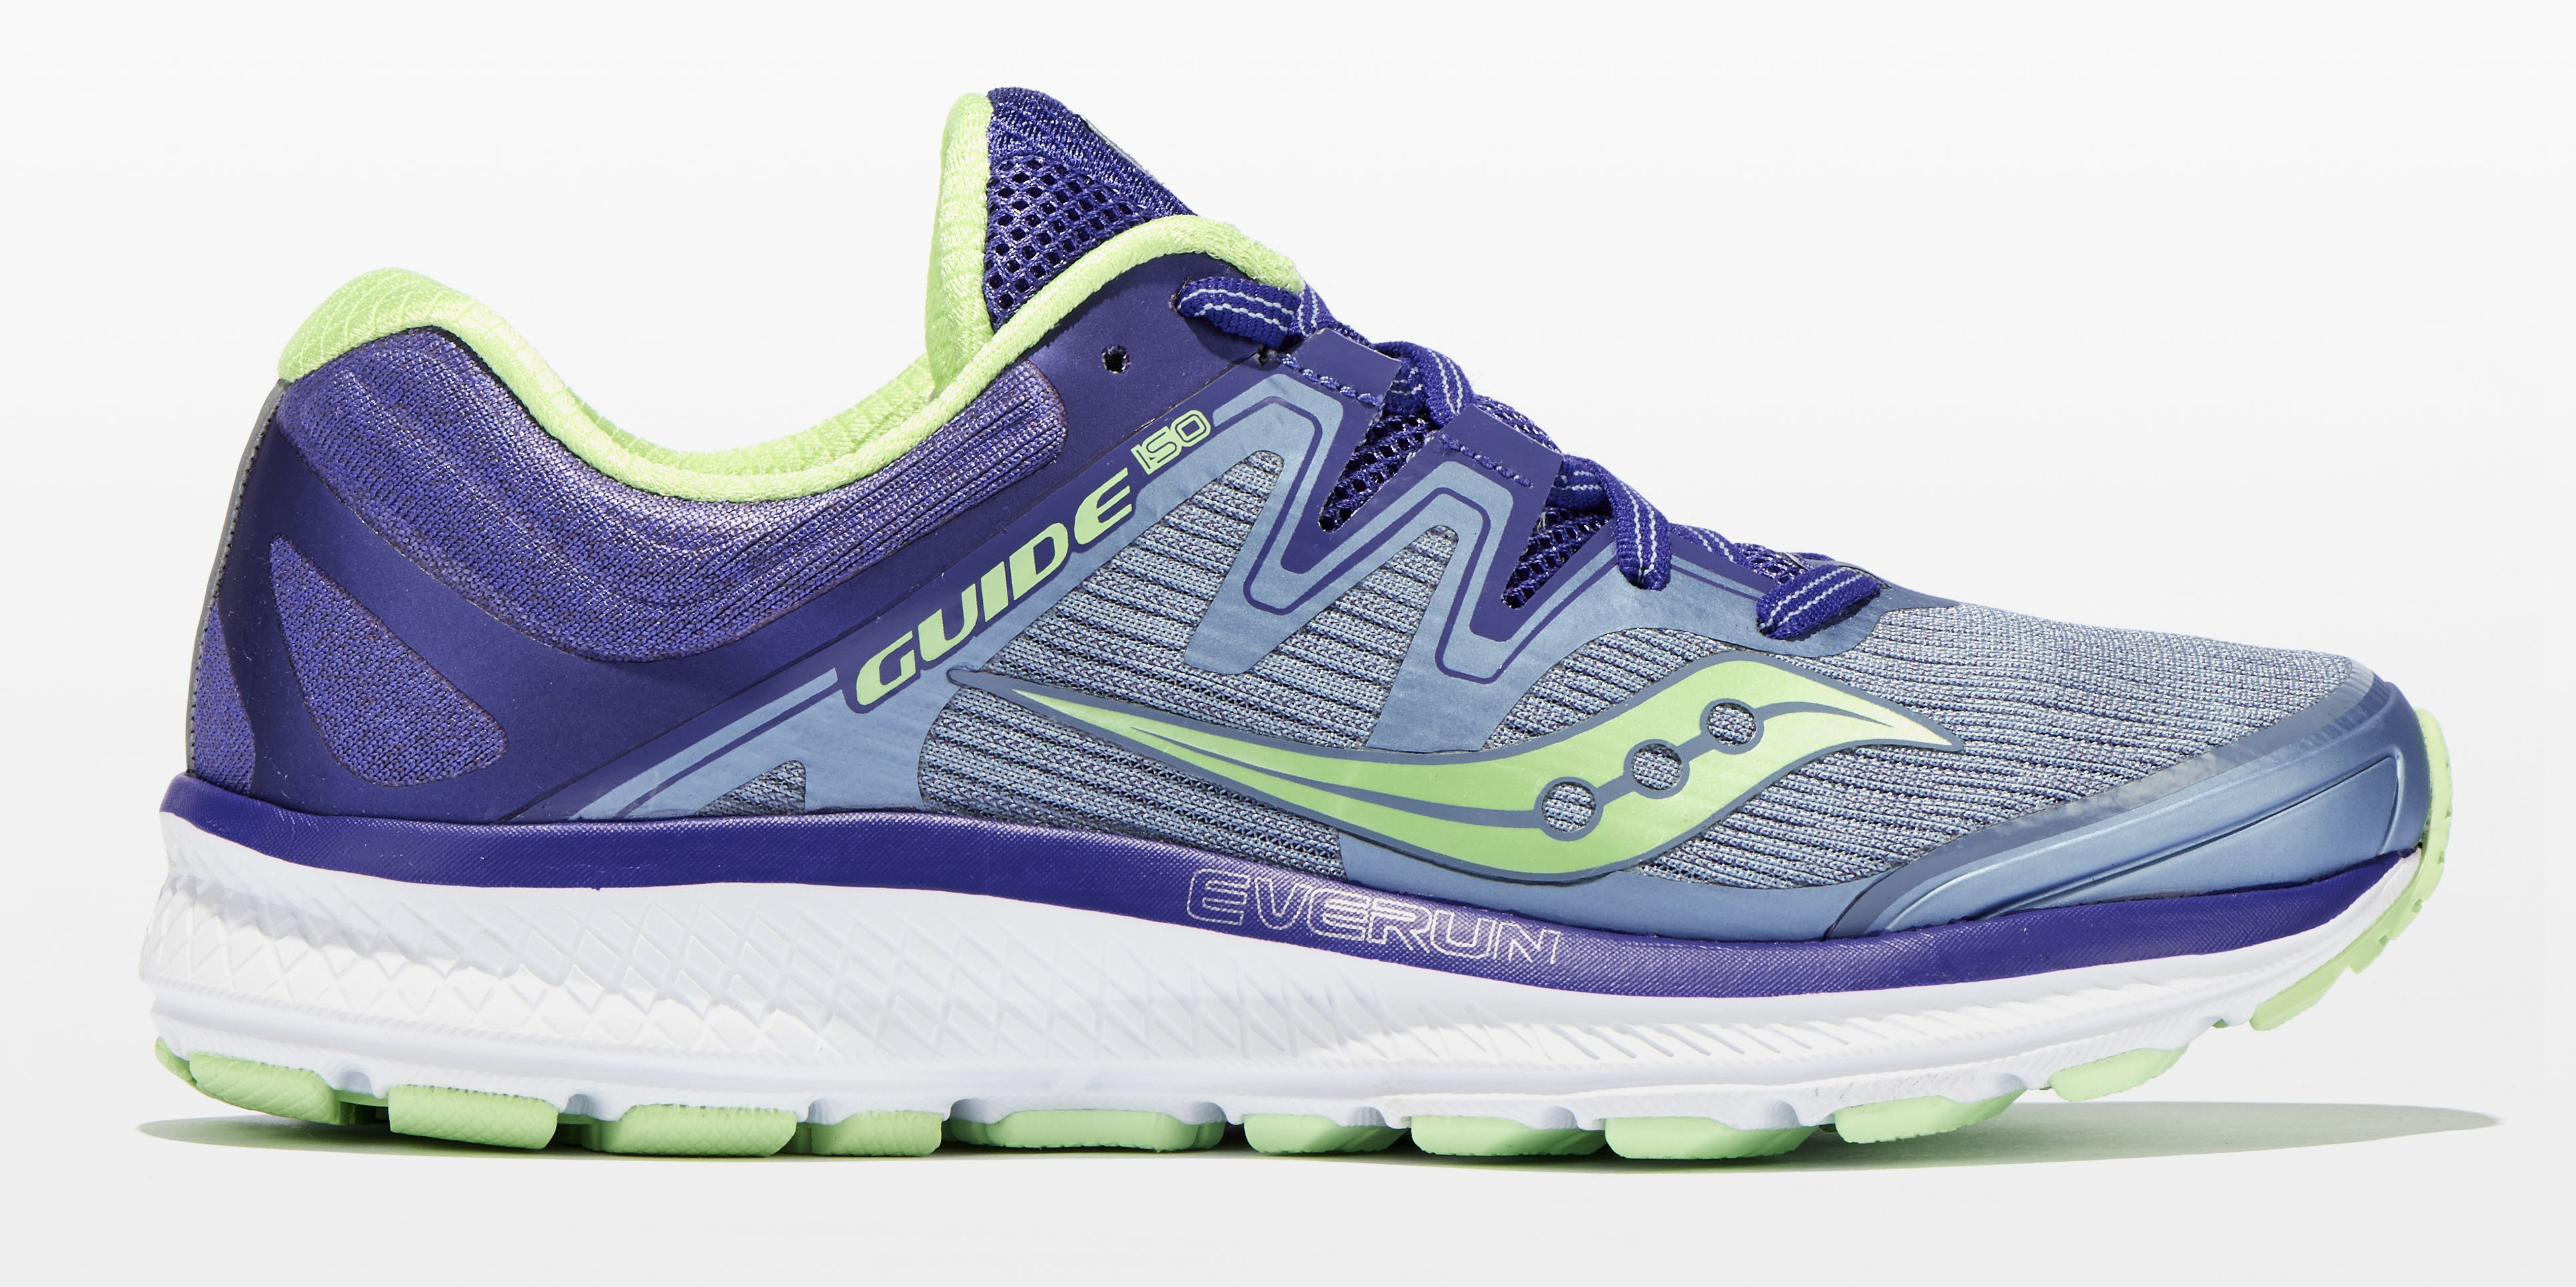 365032739beb Saucony Guide ISO Review - Saucony Running Shoes